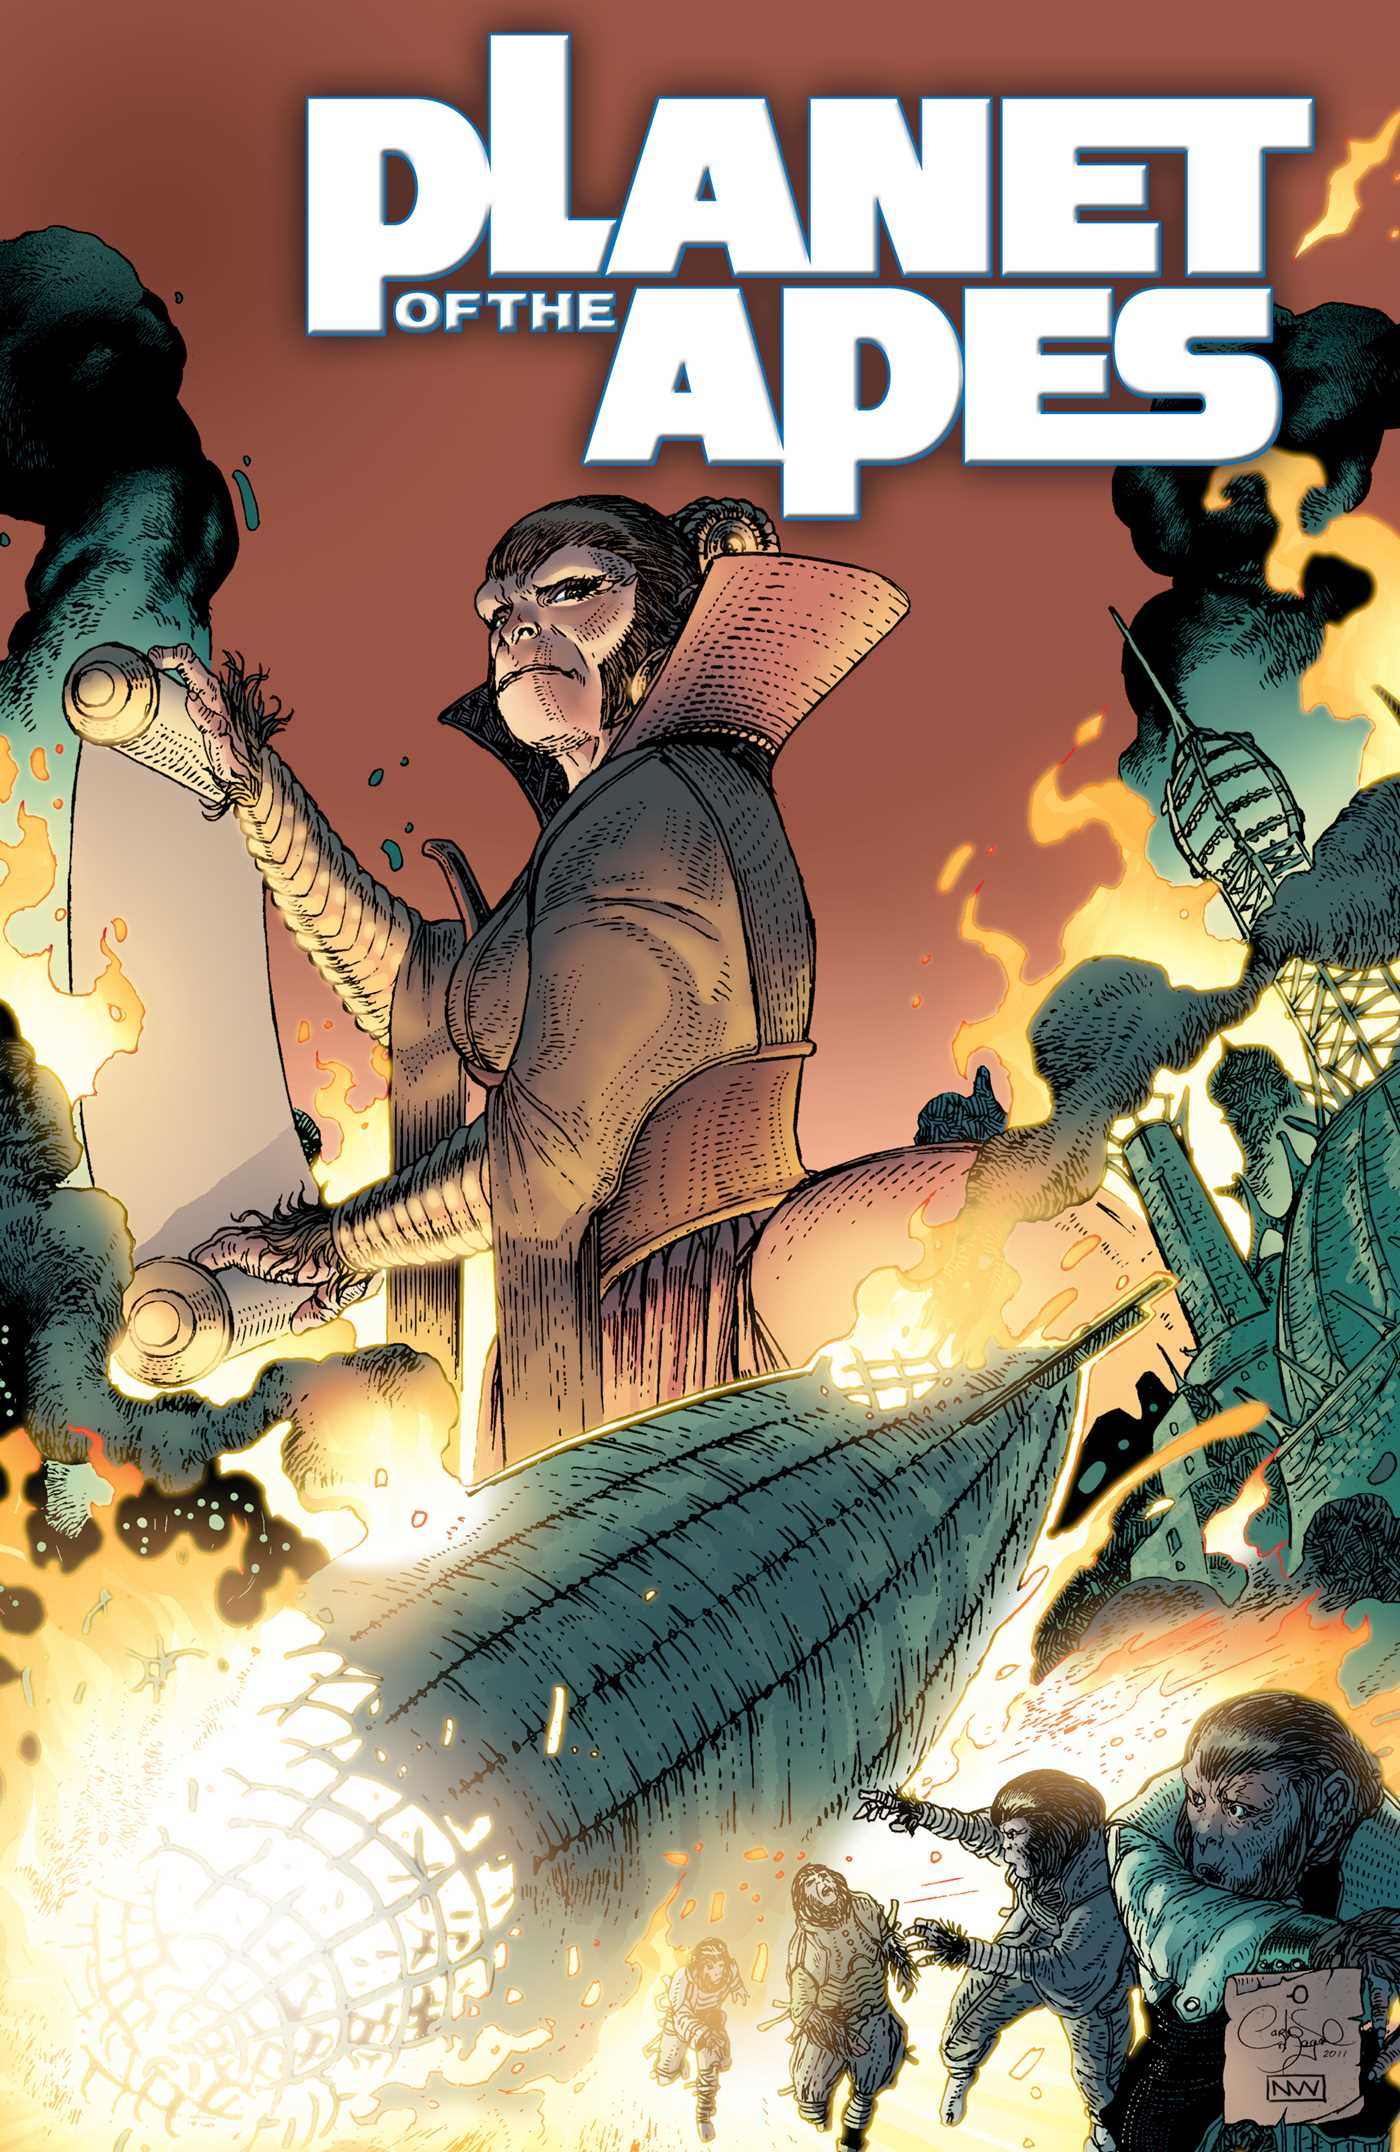 Planet-of-the-apes-vol-3-children-of-fire-9781608862719_hr